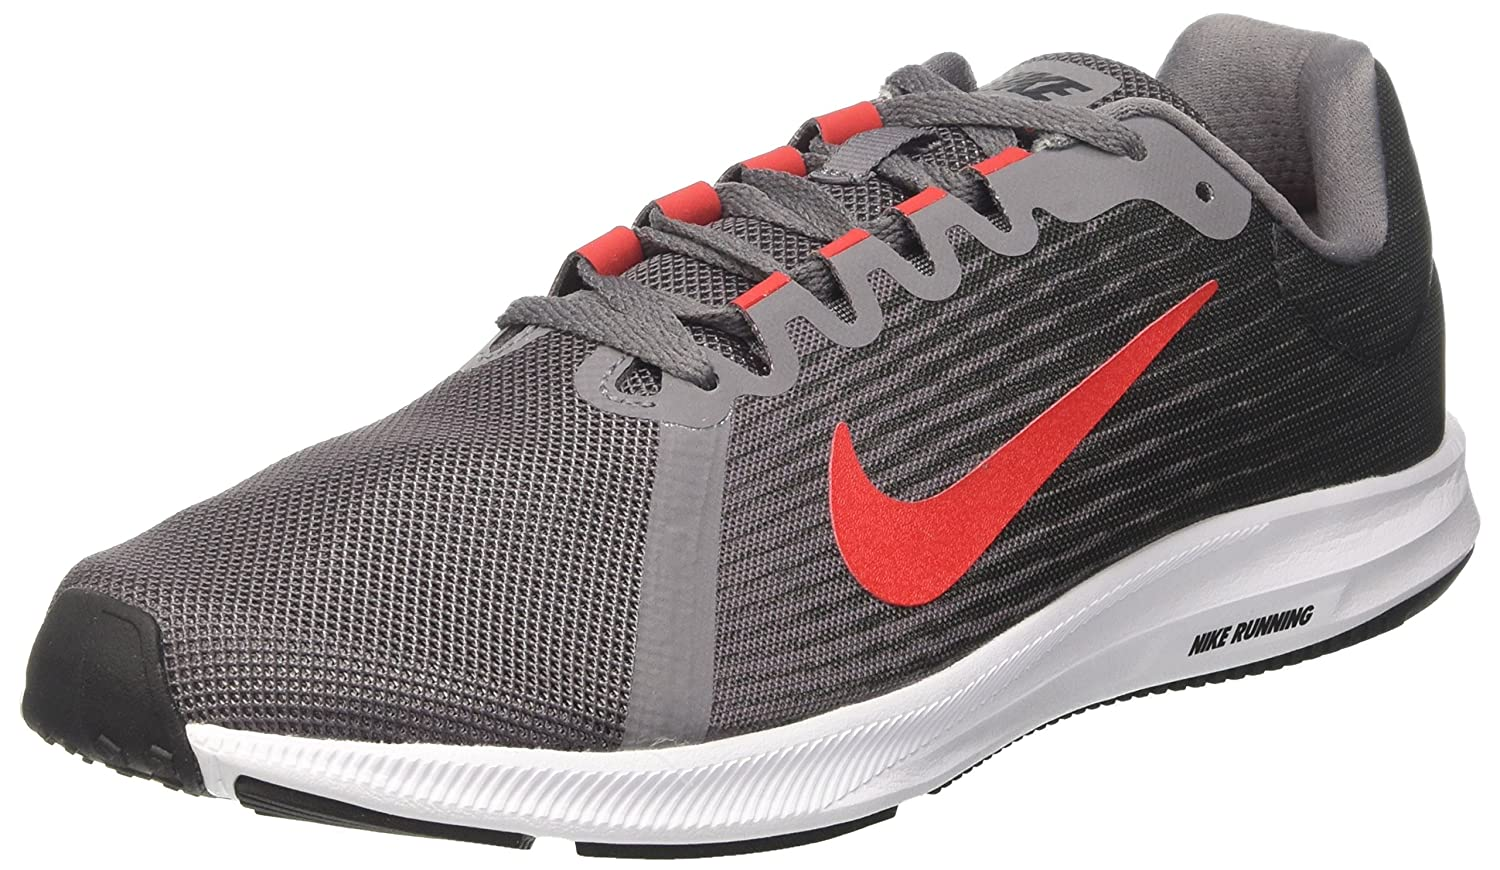 41efe3f1cf4 Men s Downshifter 8 Running Shoe - Anthracite Speed Red  Amazon.com.au   Sports